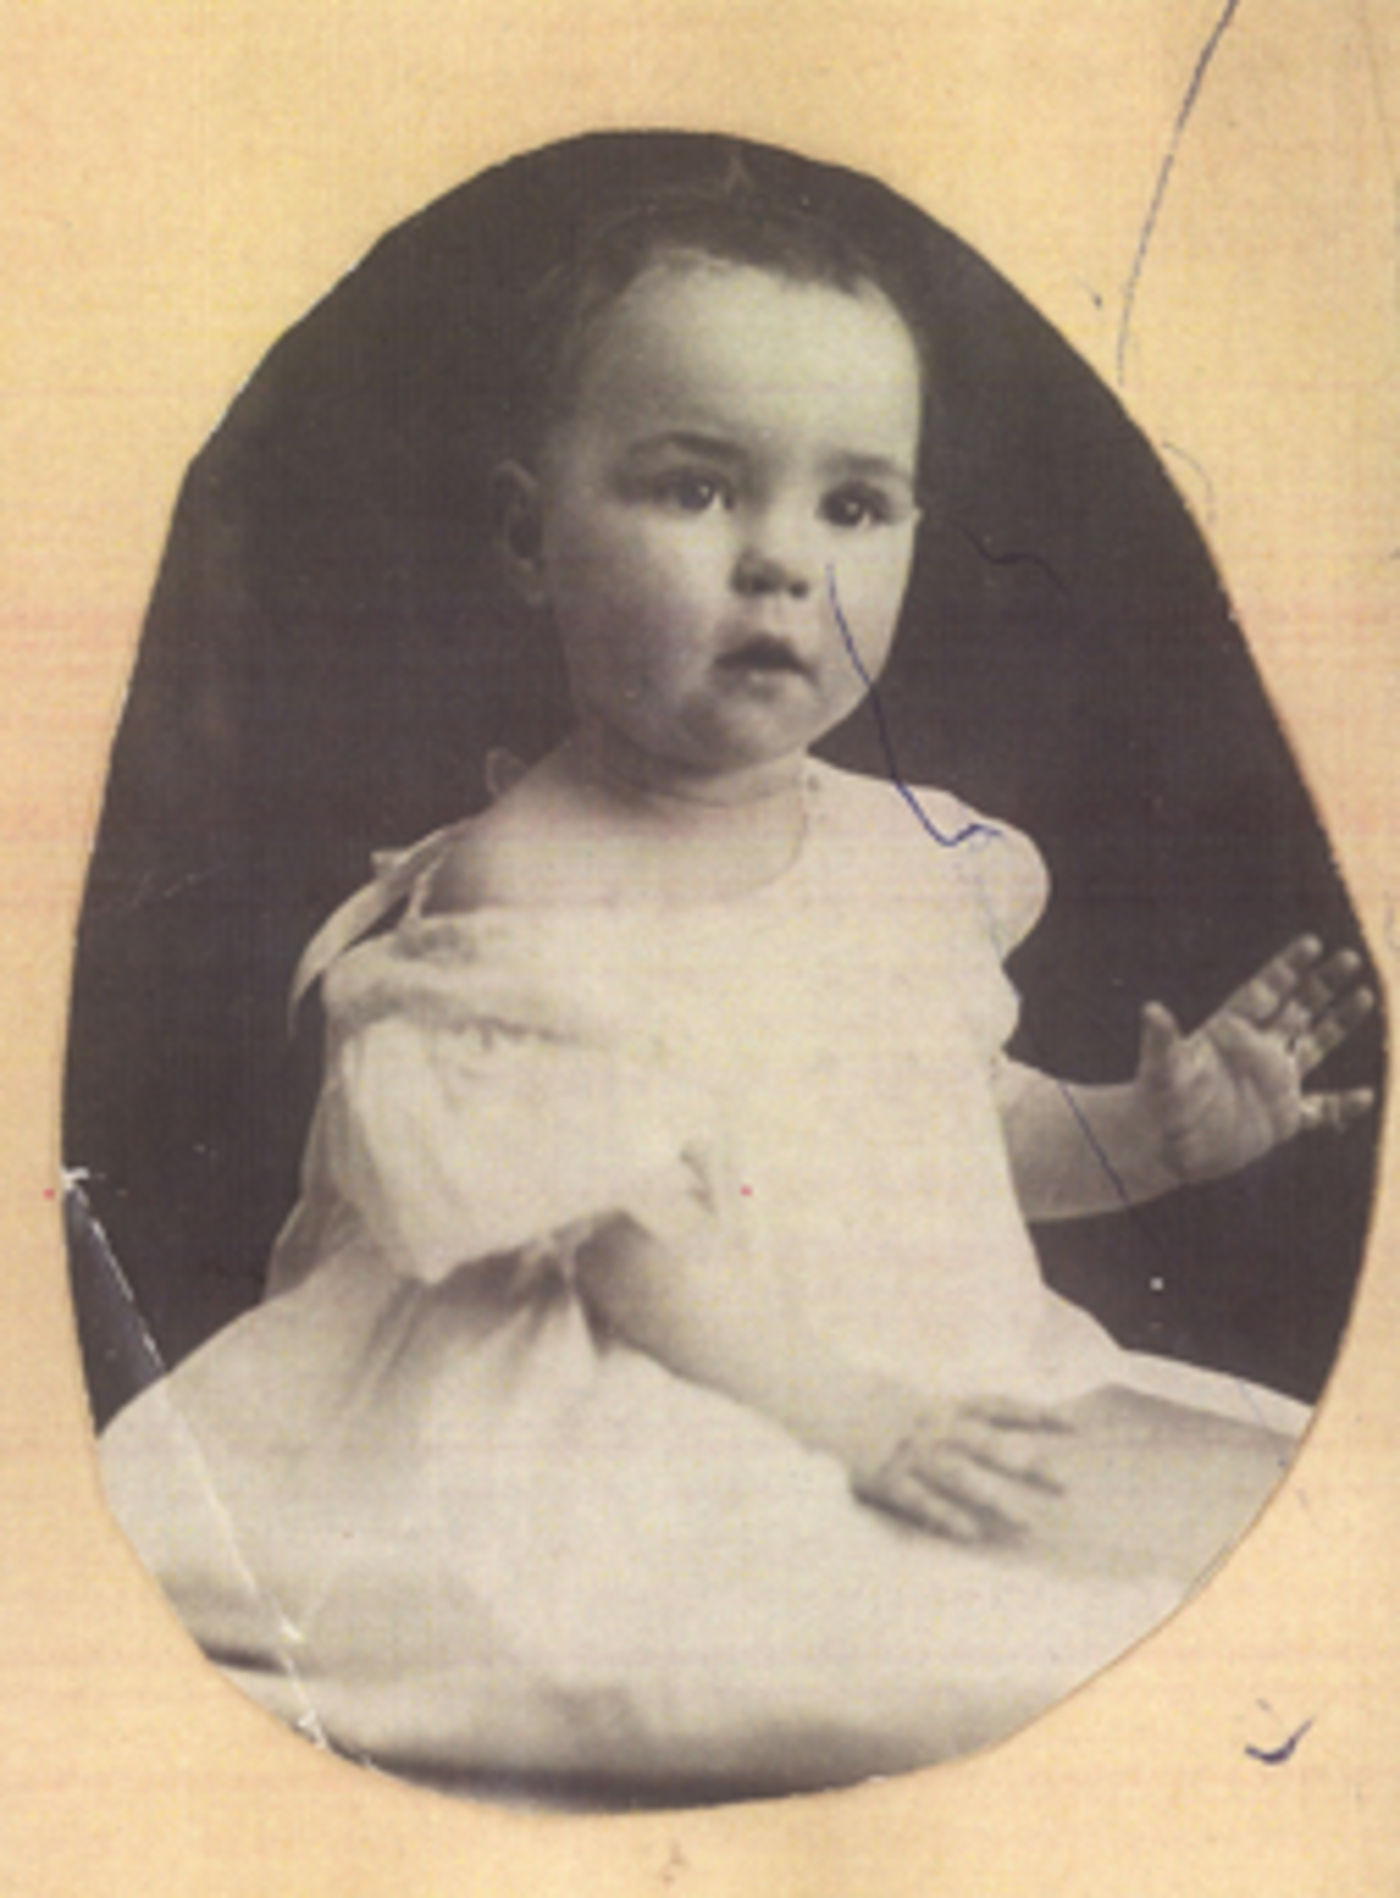 A baby photo of June Dickerson